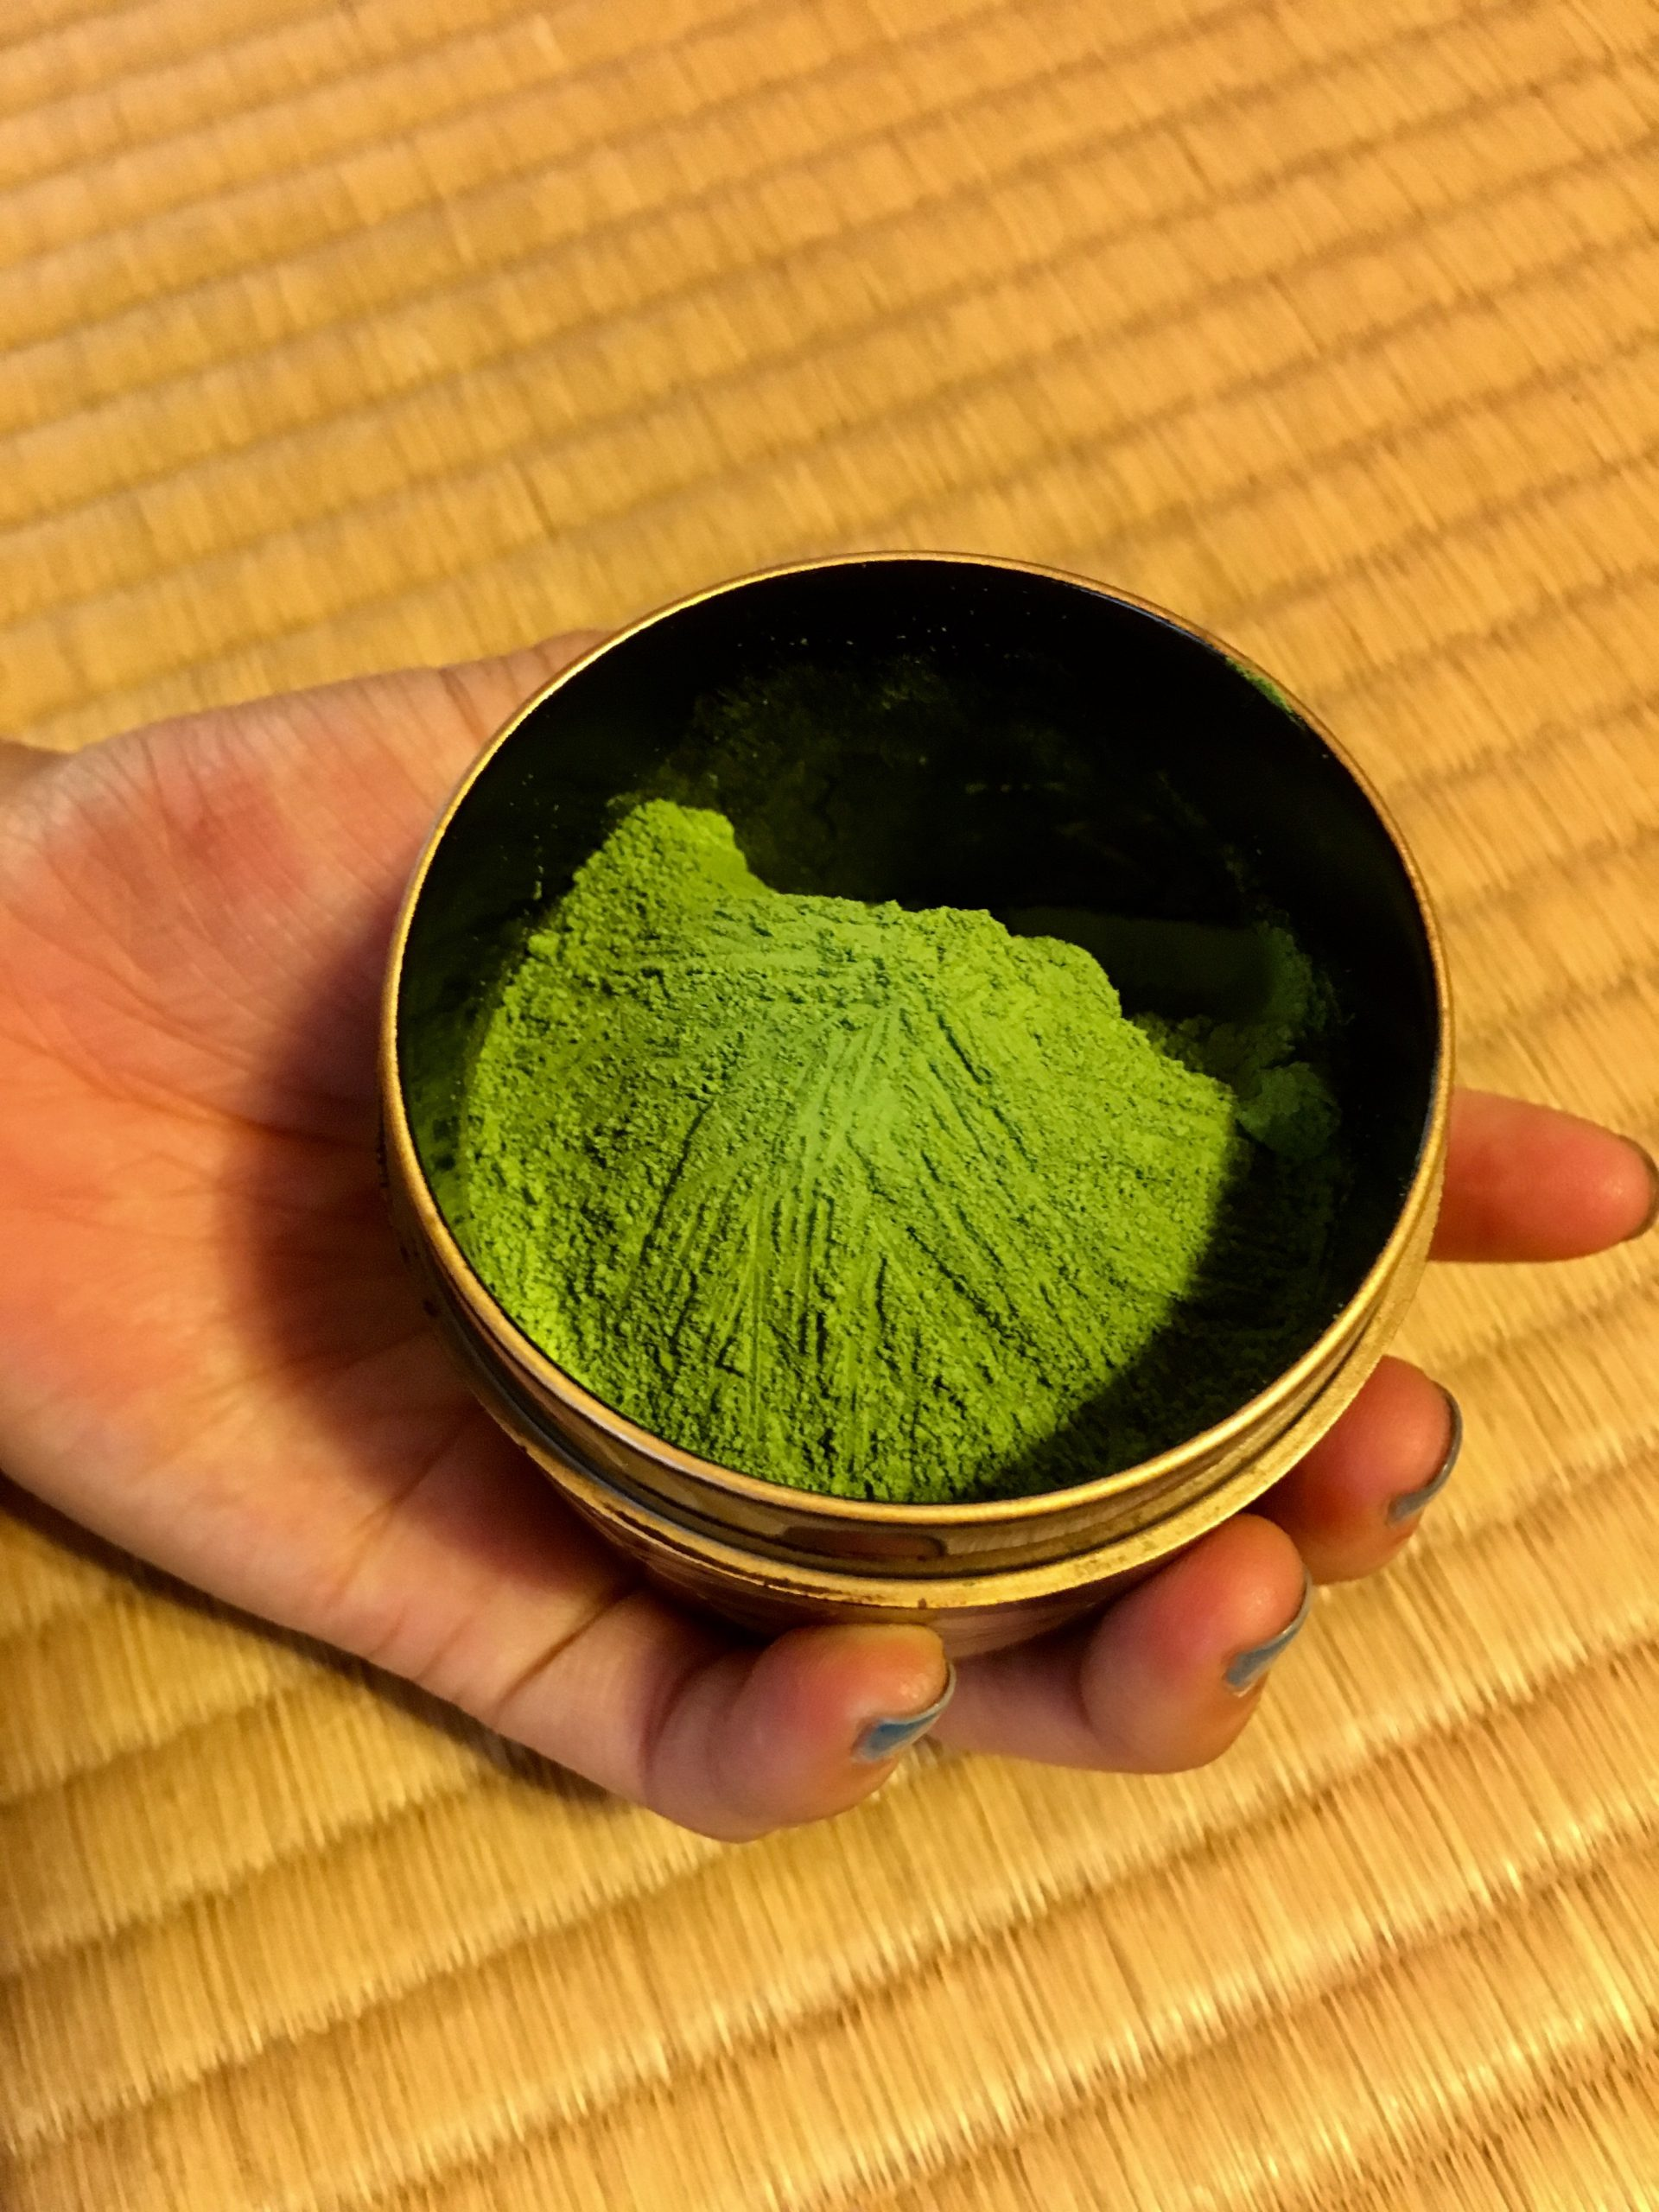 Close up image of green tea grounds